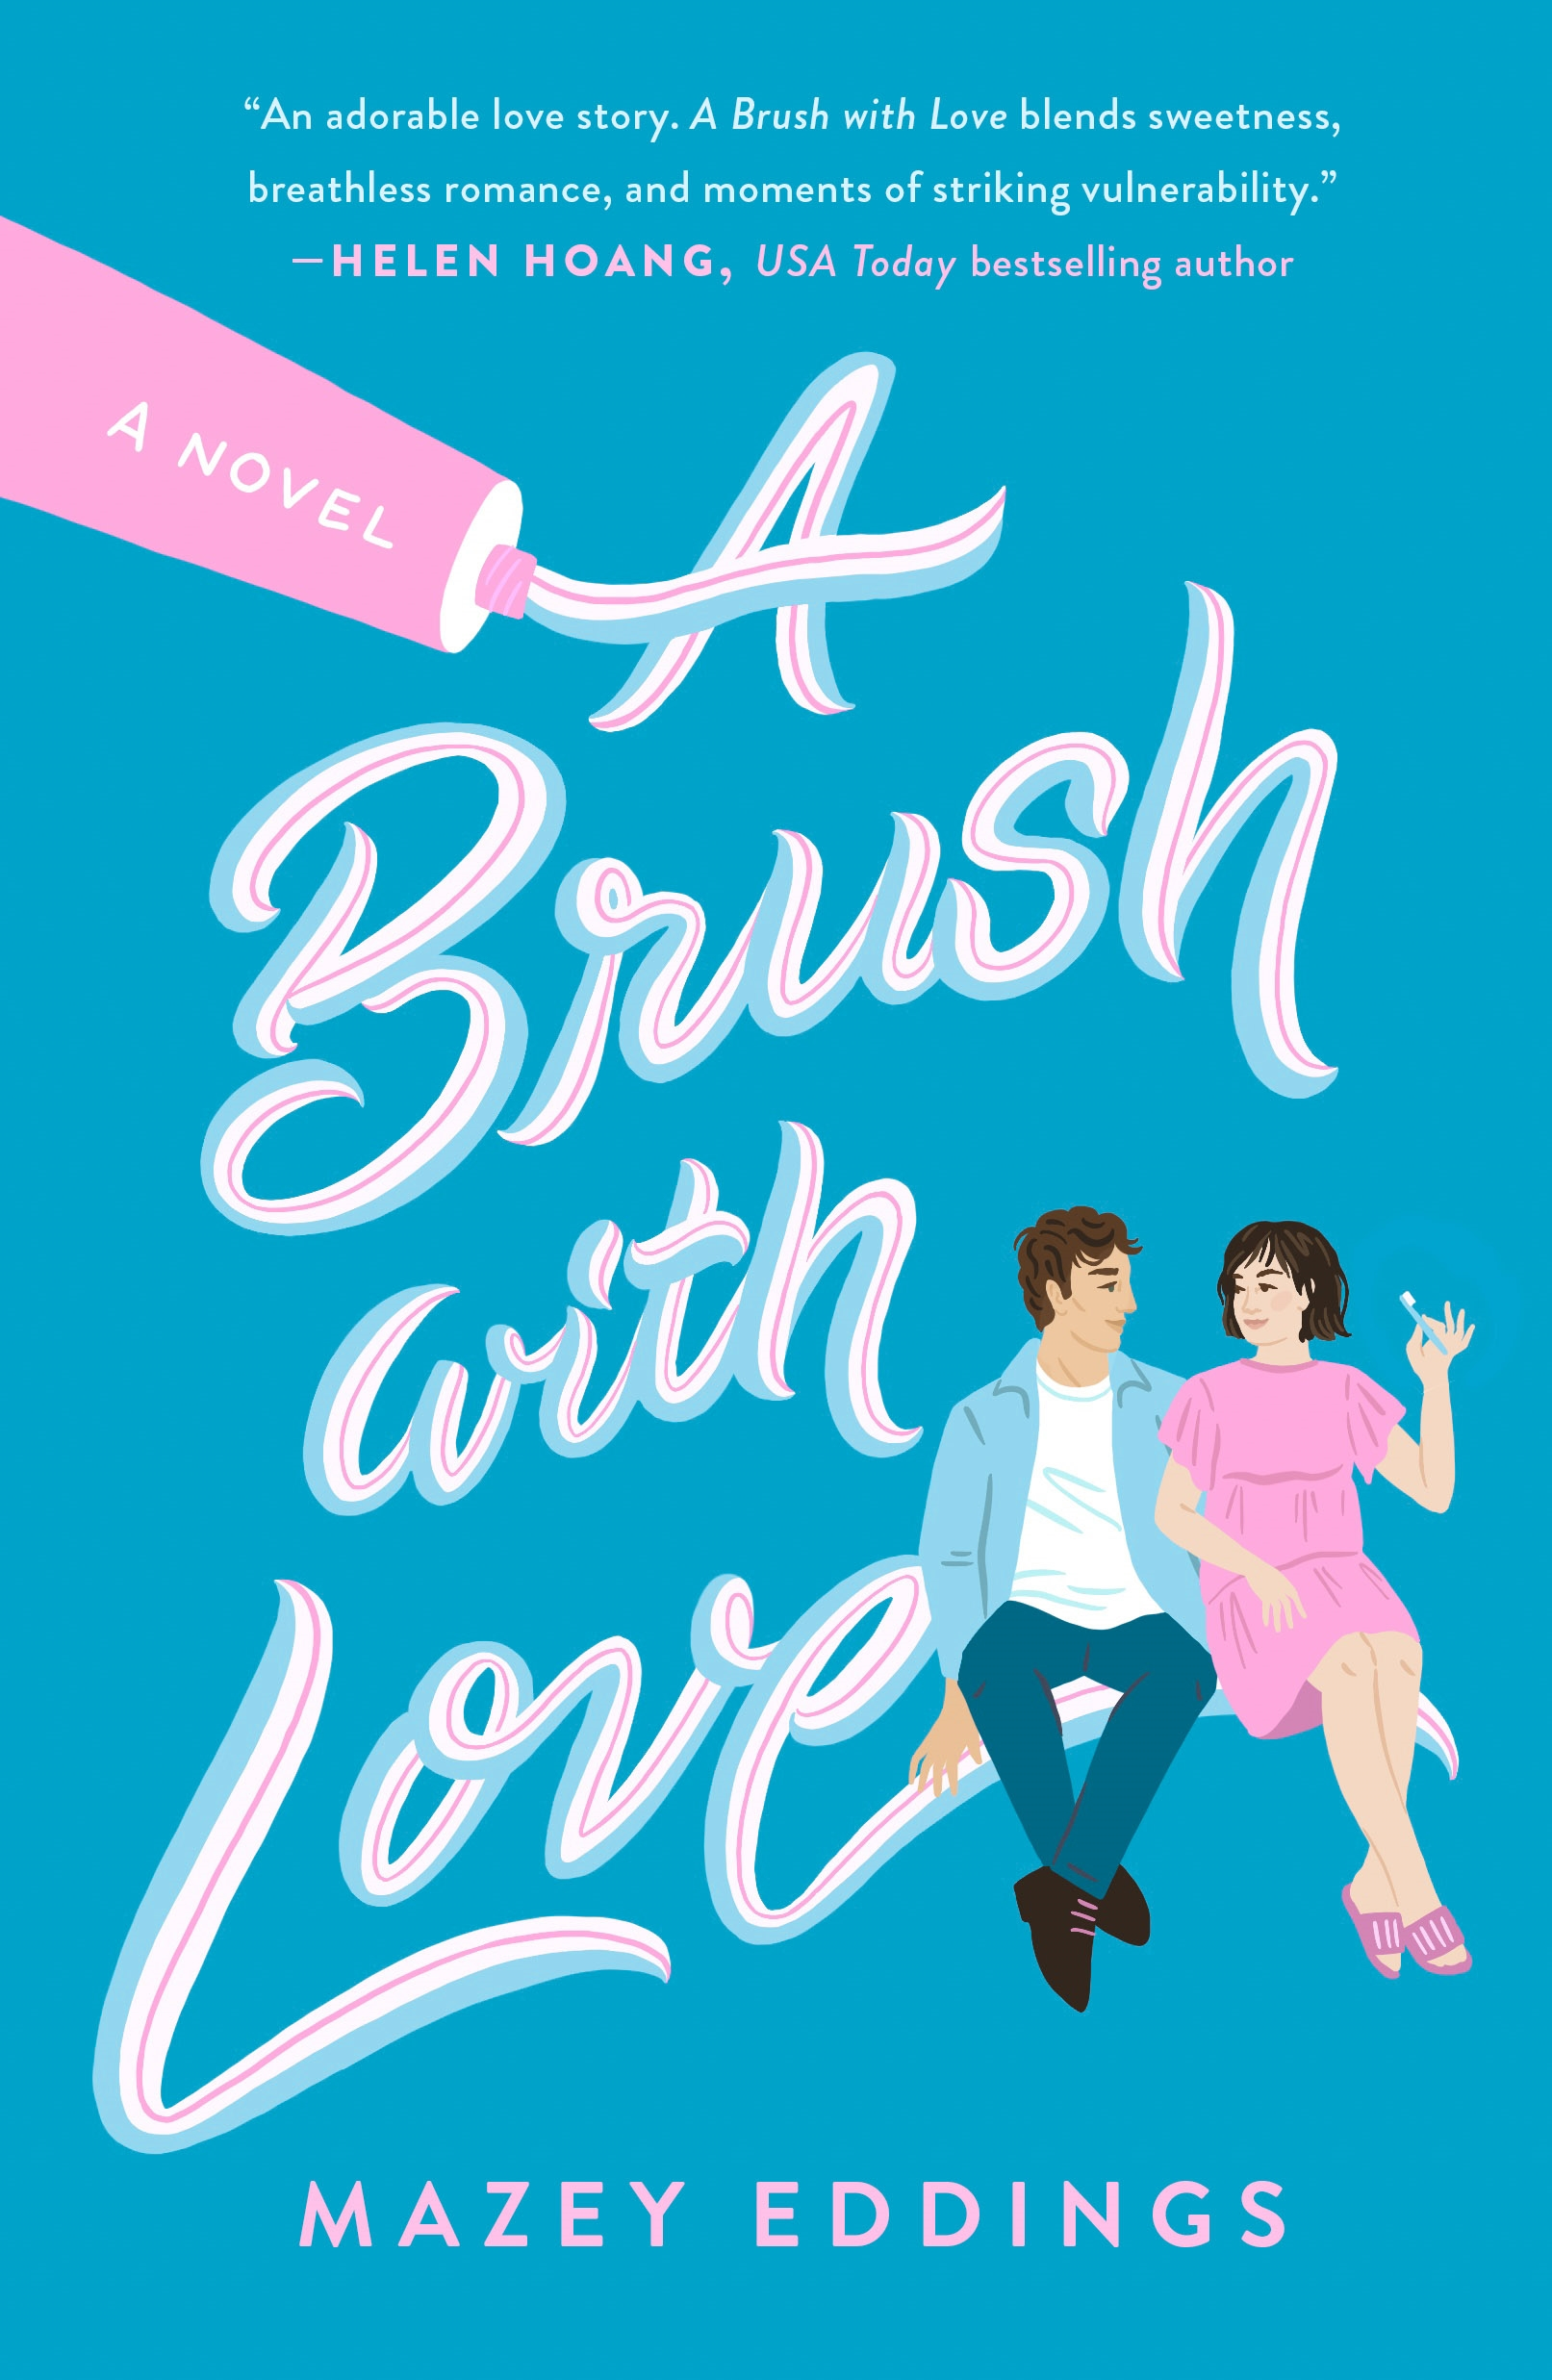 A Brush With Love By Mazey Eddings Release Date? 2022 Debut Releases